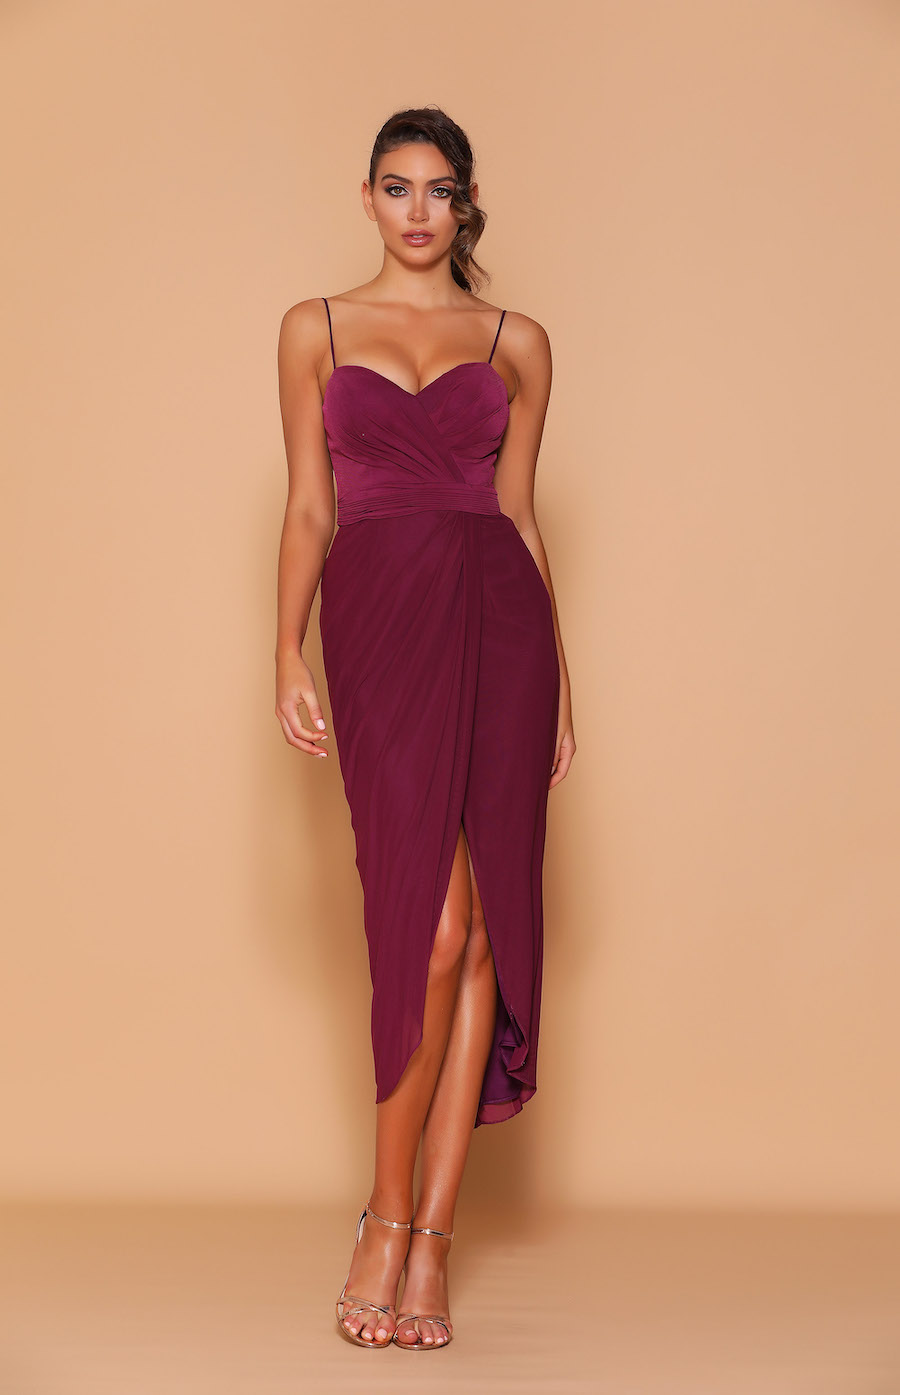 Sweetheart neckline with spaghetti straps tea length cocktail/ bridesmaid dress.